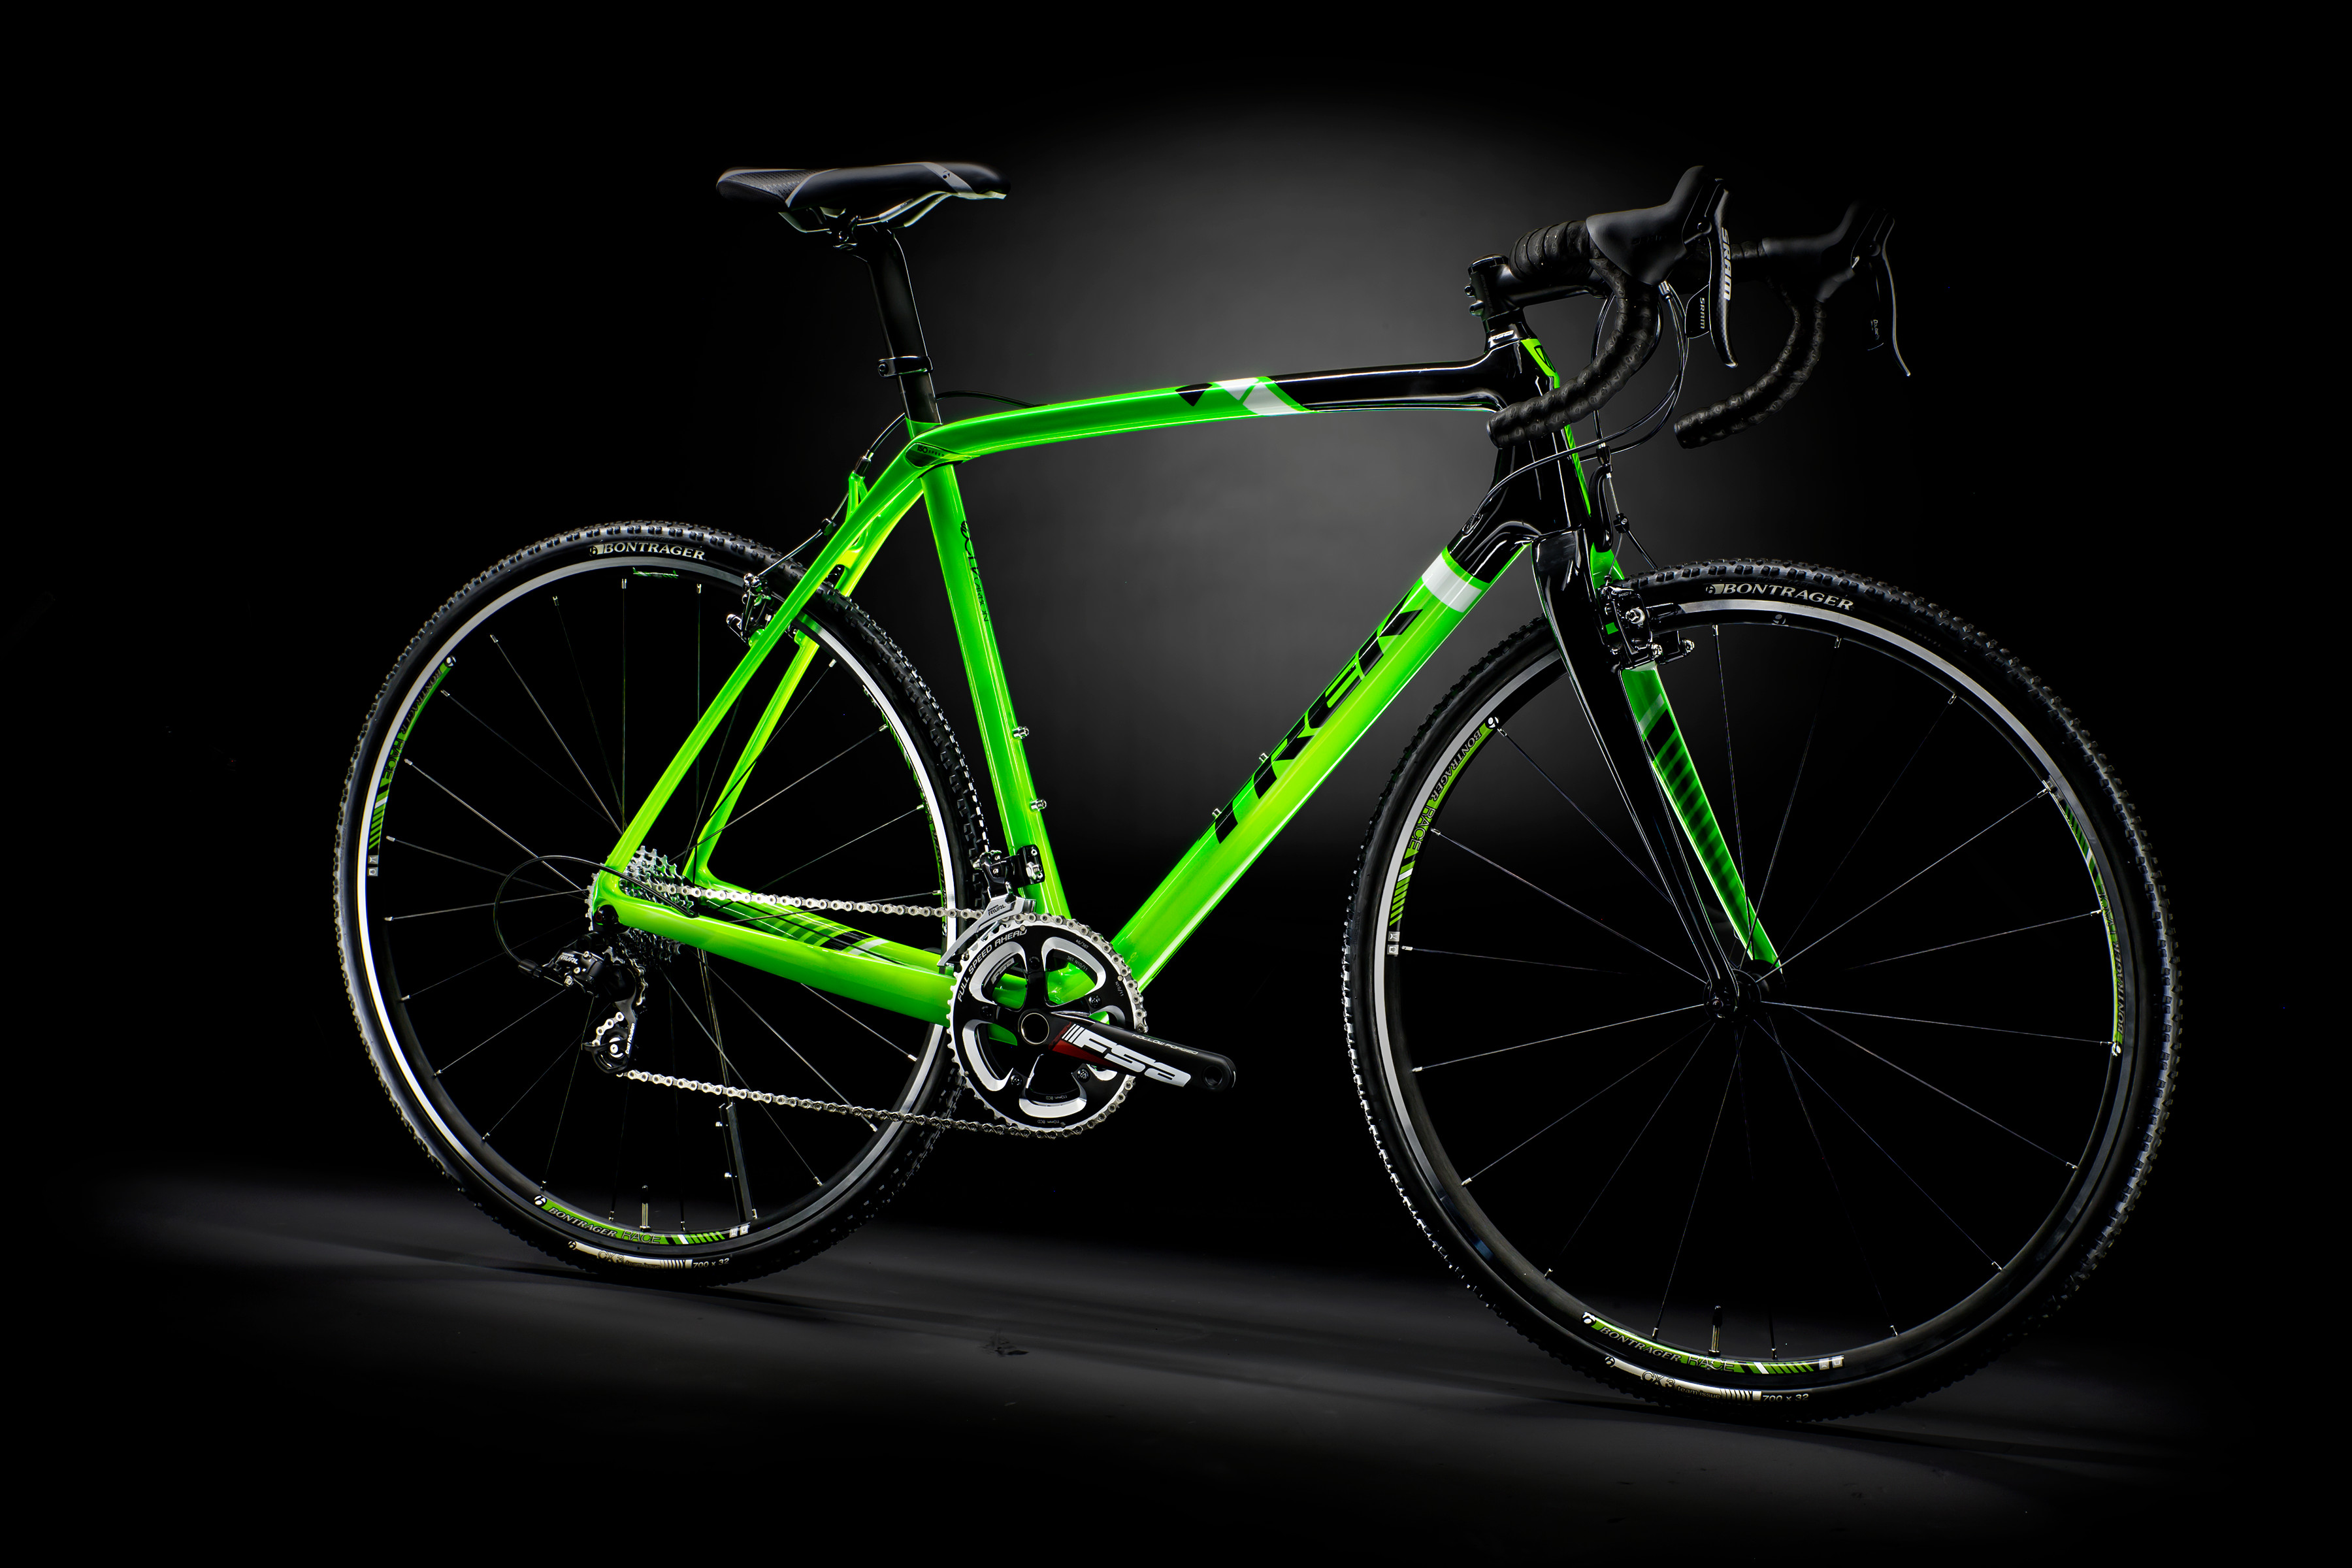 2015 Trek Boone - The Cyclocross Superbike - Village Cycle Center